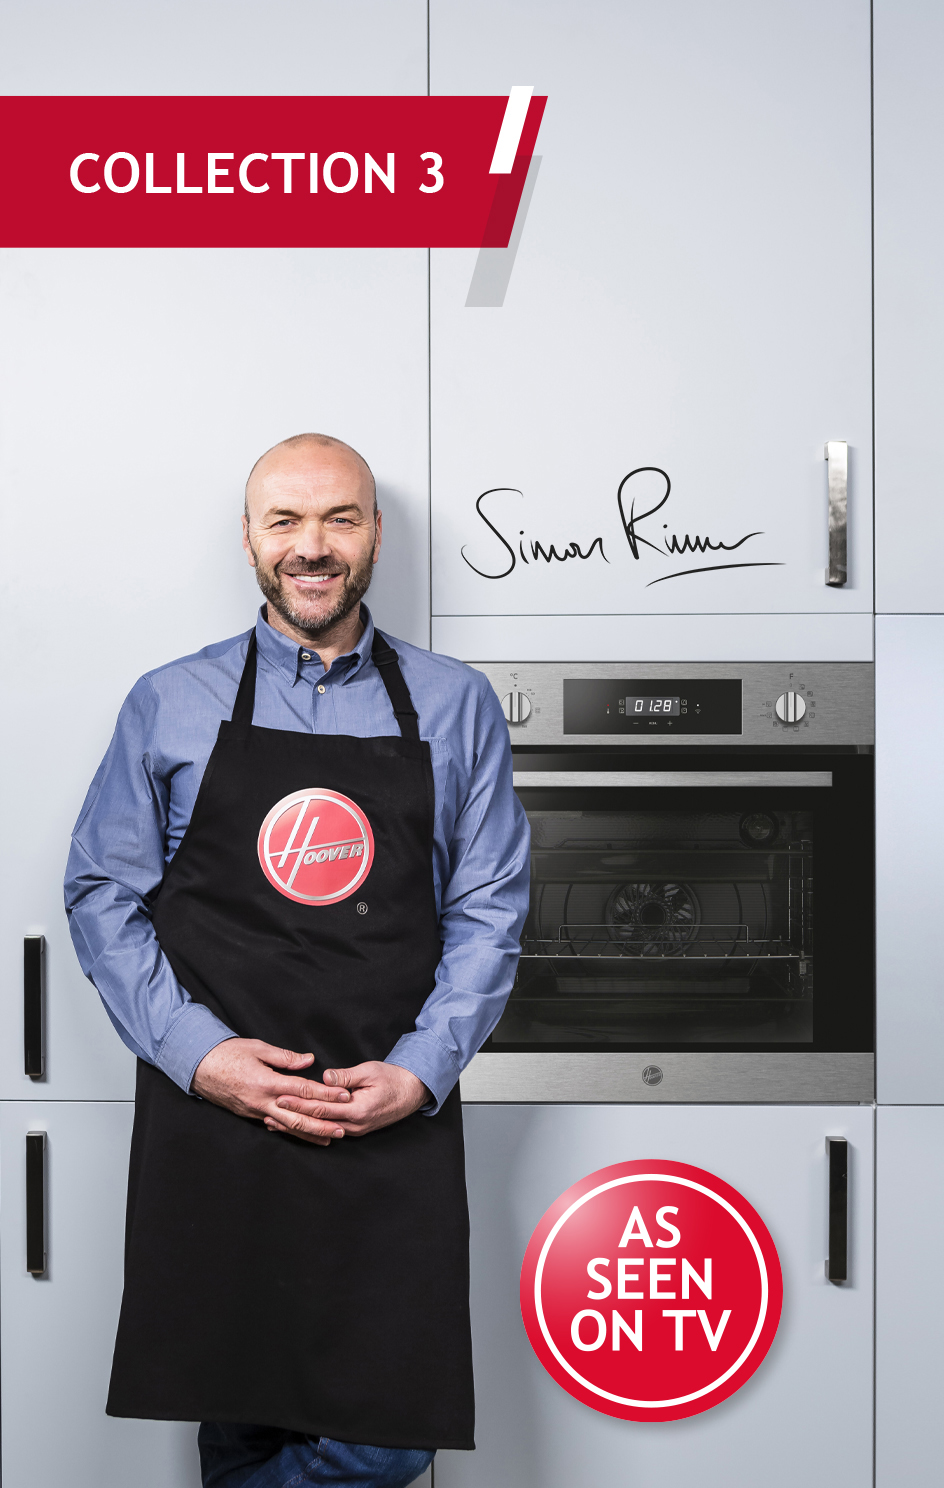 Hoover and Simon Rimmer